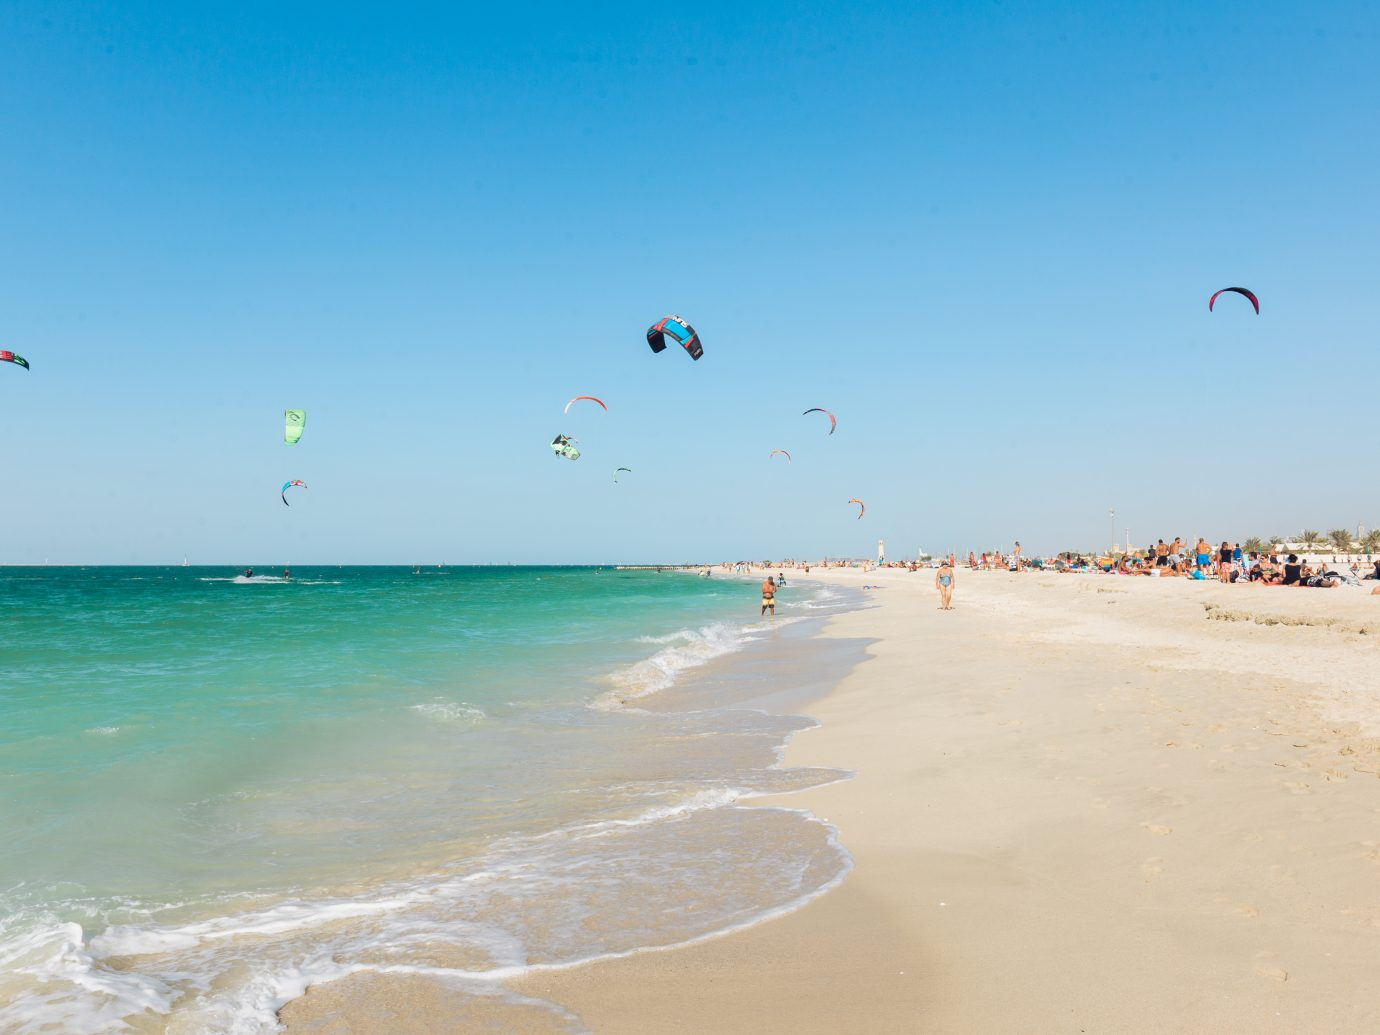 Kiteboarding at Kite Beach in Dubai 2015